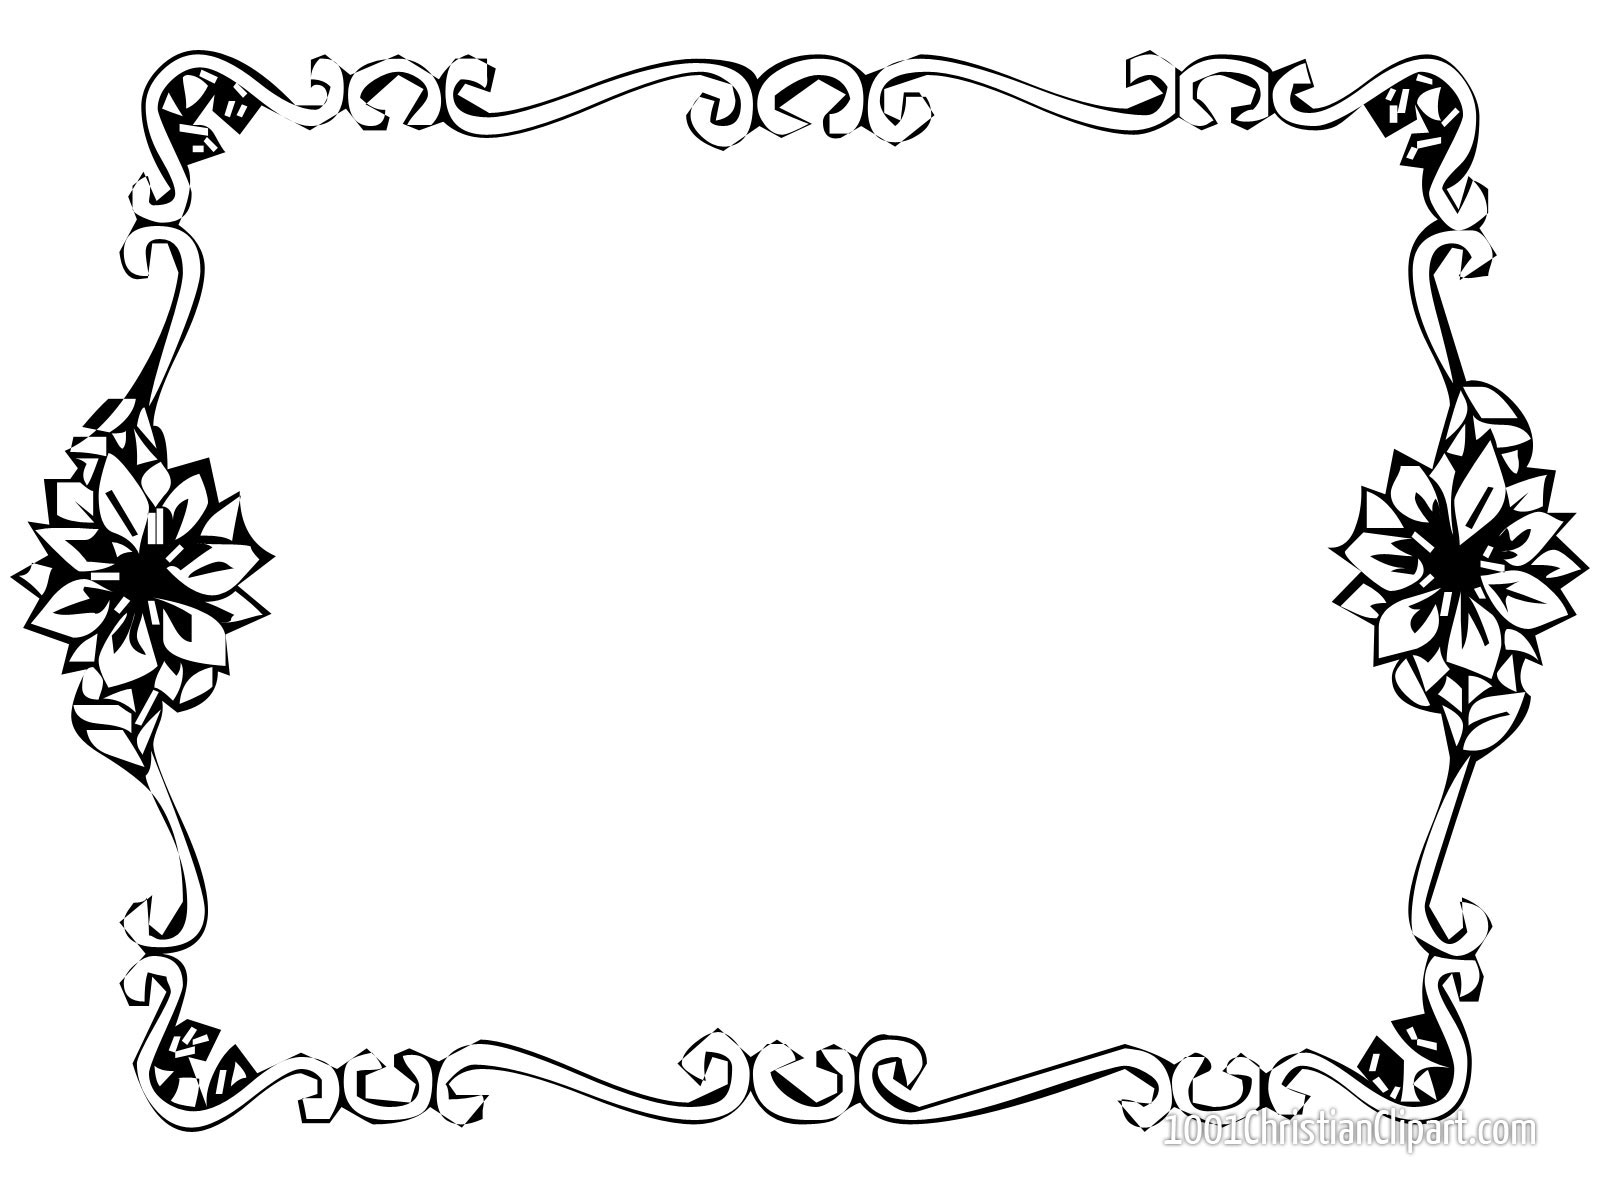 Clip art borders free picture free download Free online clip art borders - ClipartFest picture free download